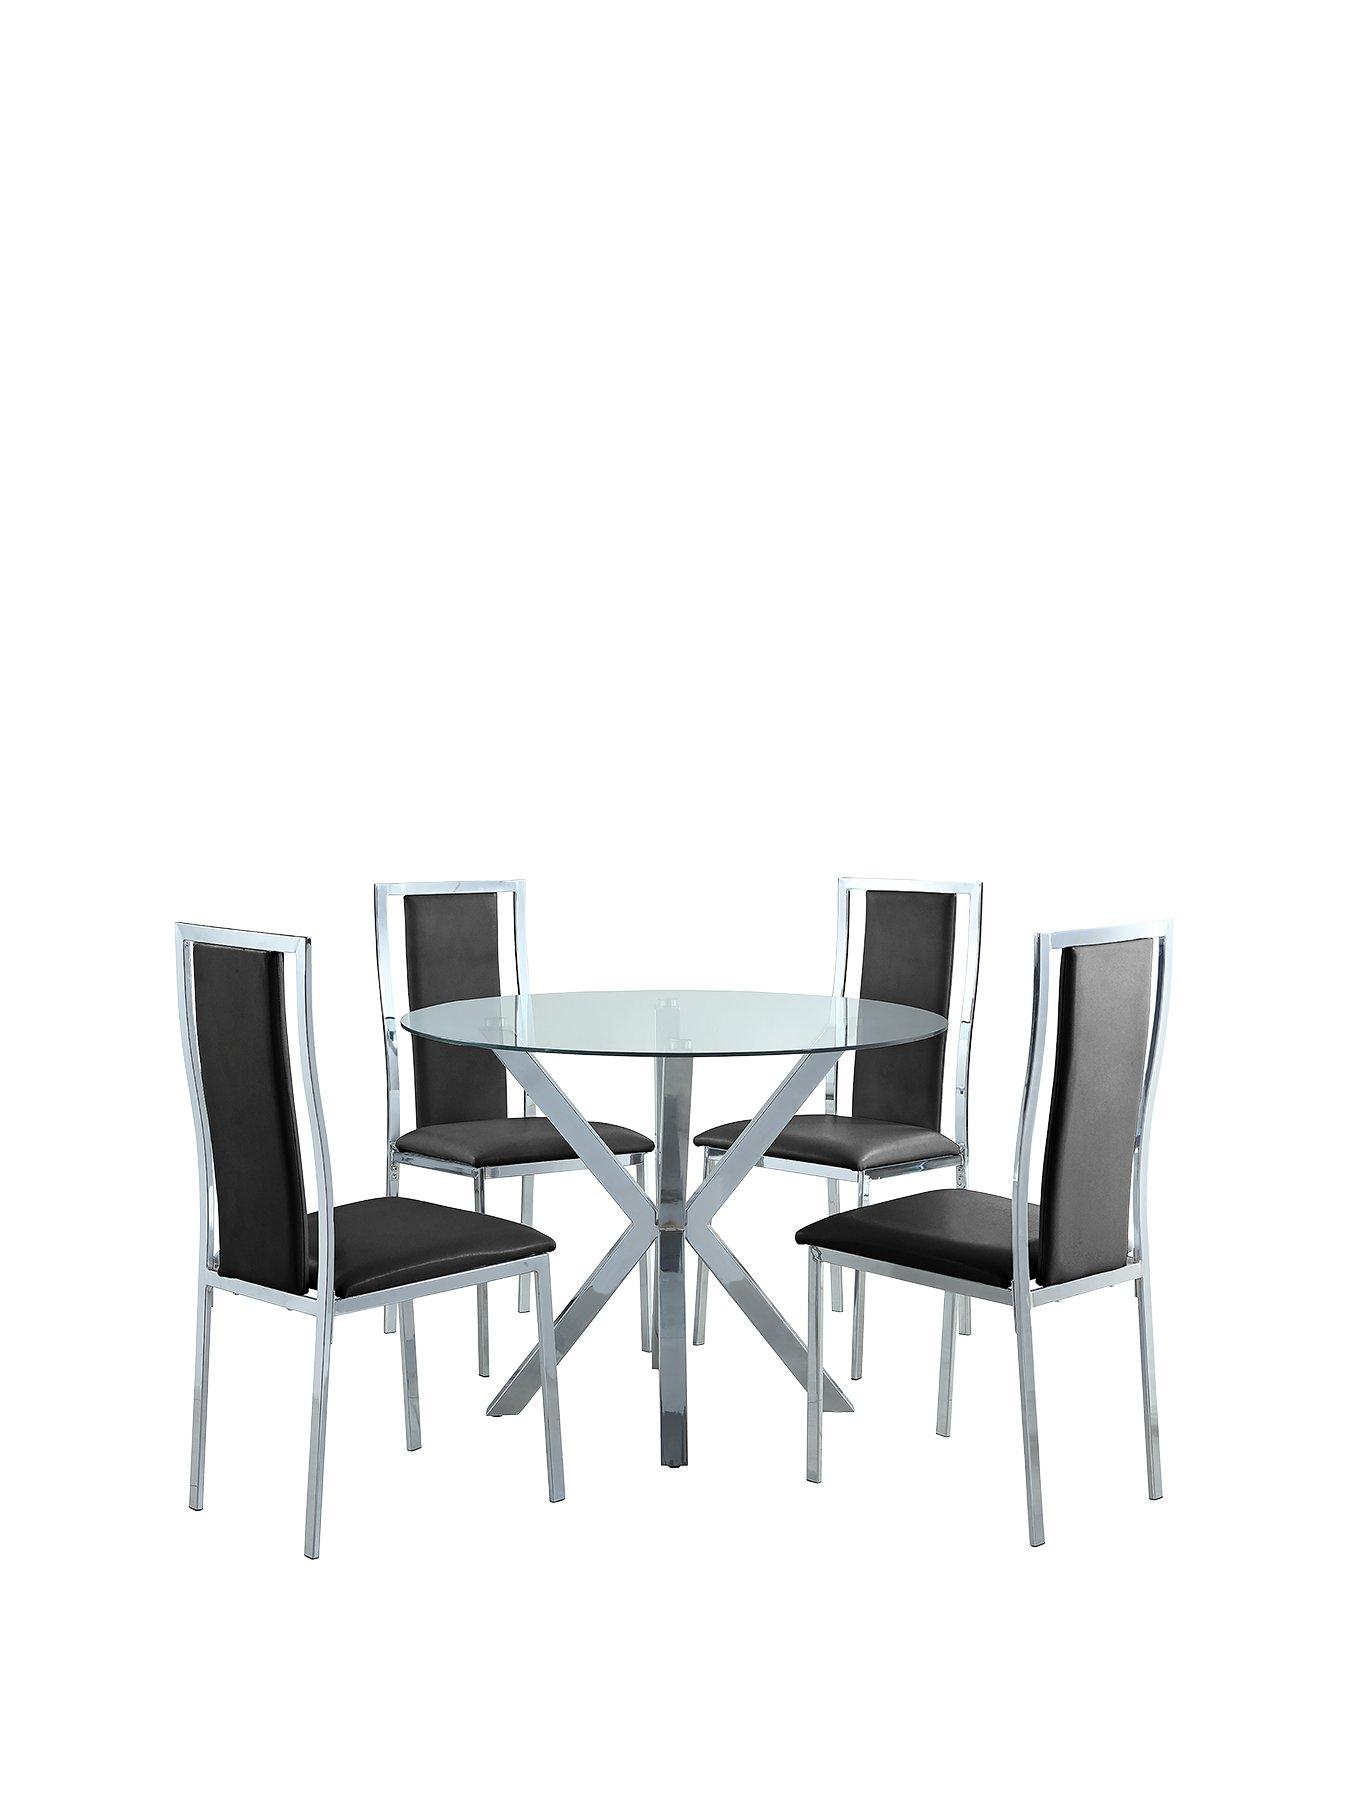 chopstick 100 cm round glass dining table 4 atlantic chairs clearblack